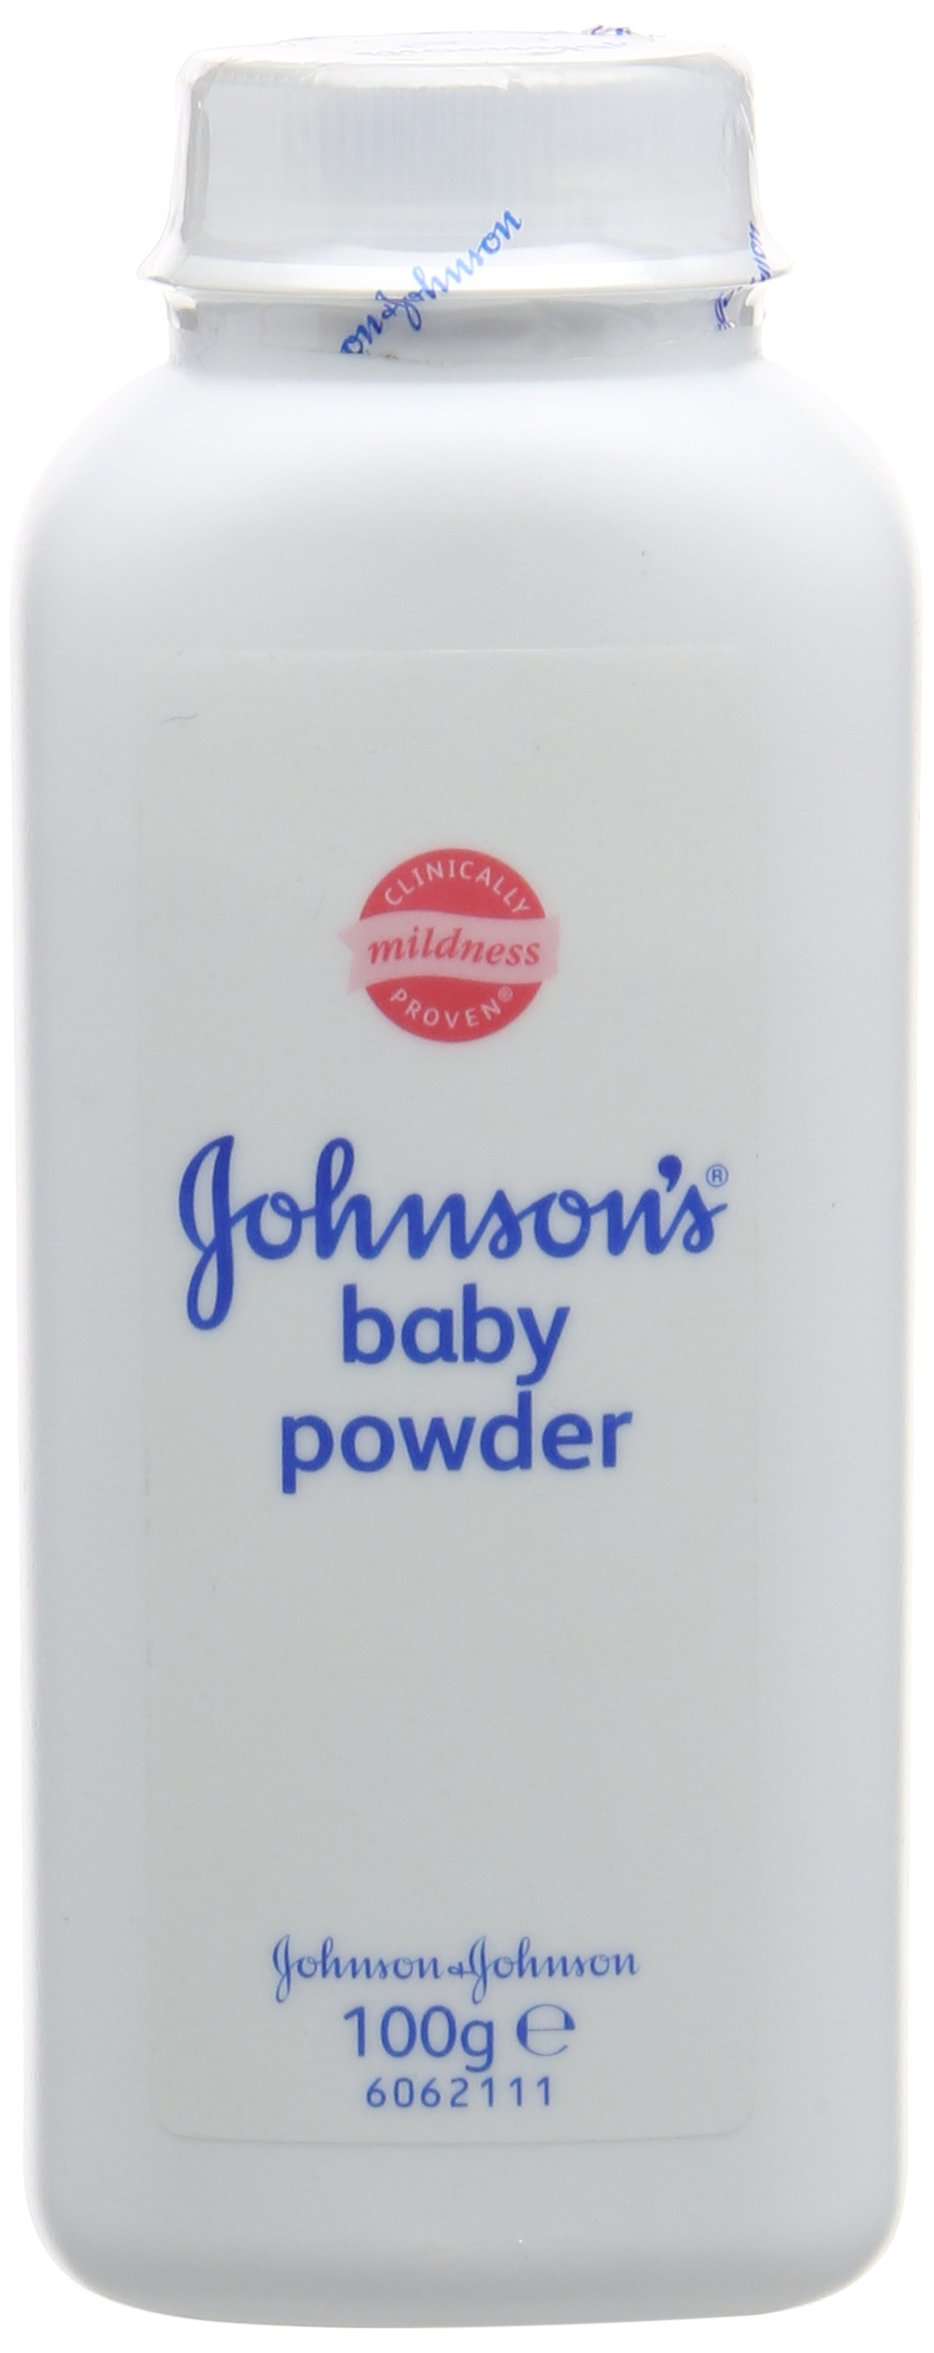 Best Rated In Baby Powders Helpful Customer Reviews Cussons Cream Soft Smooth 100gr Johnsons Powder 100g Product Image